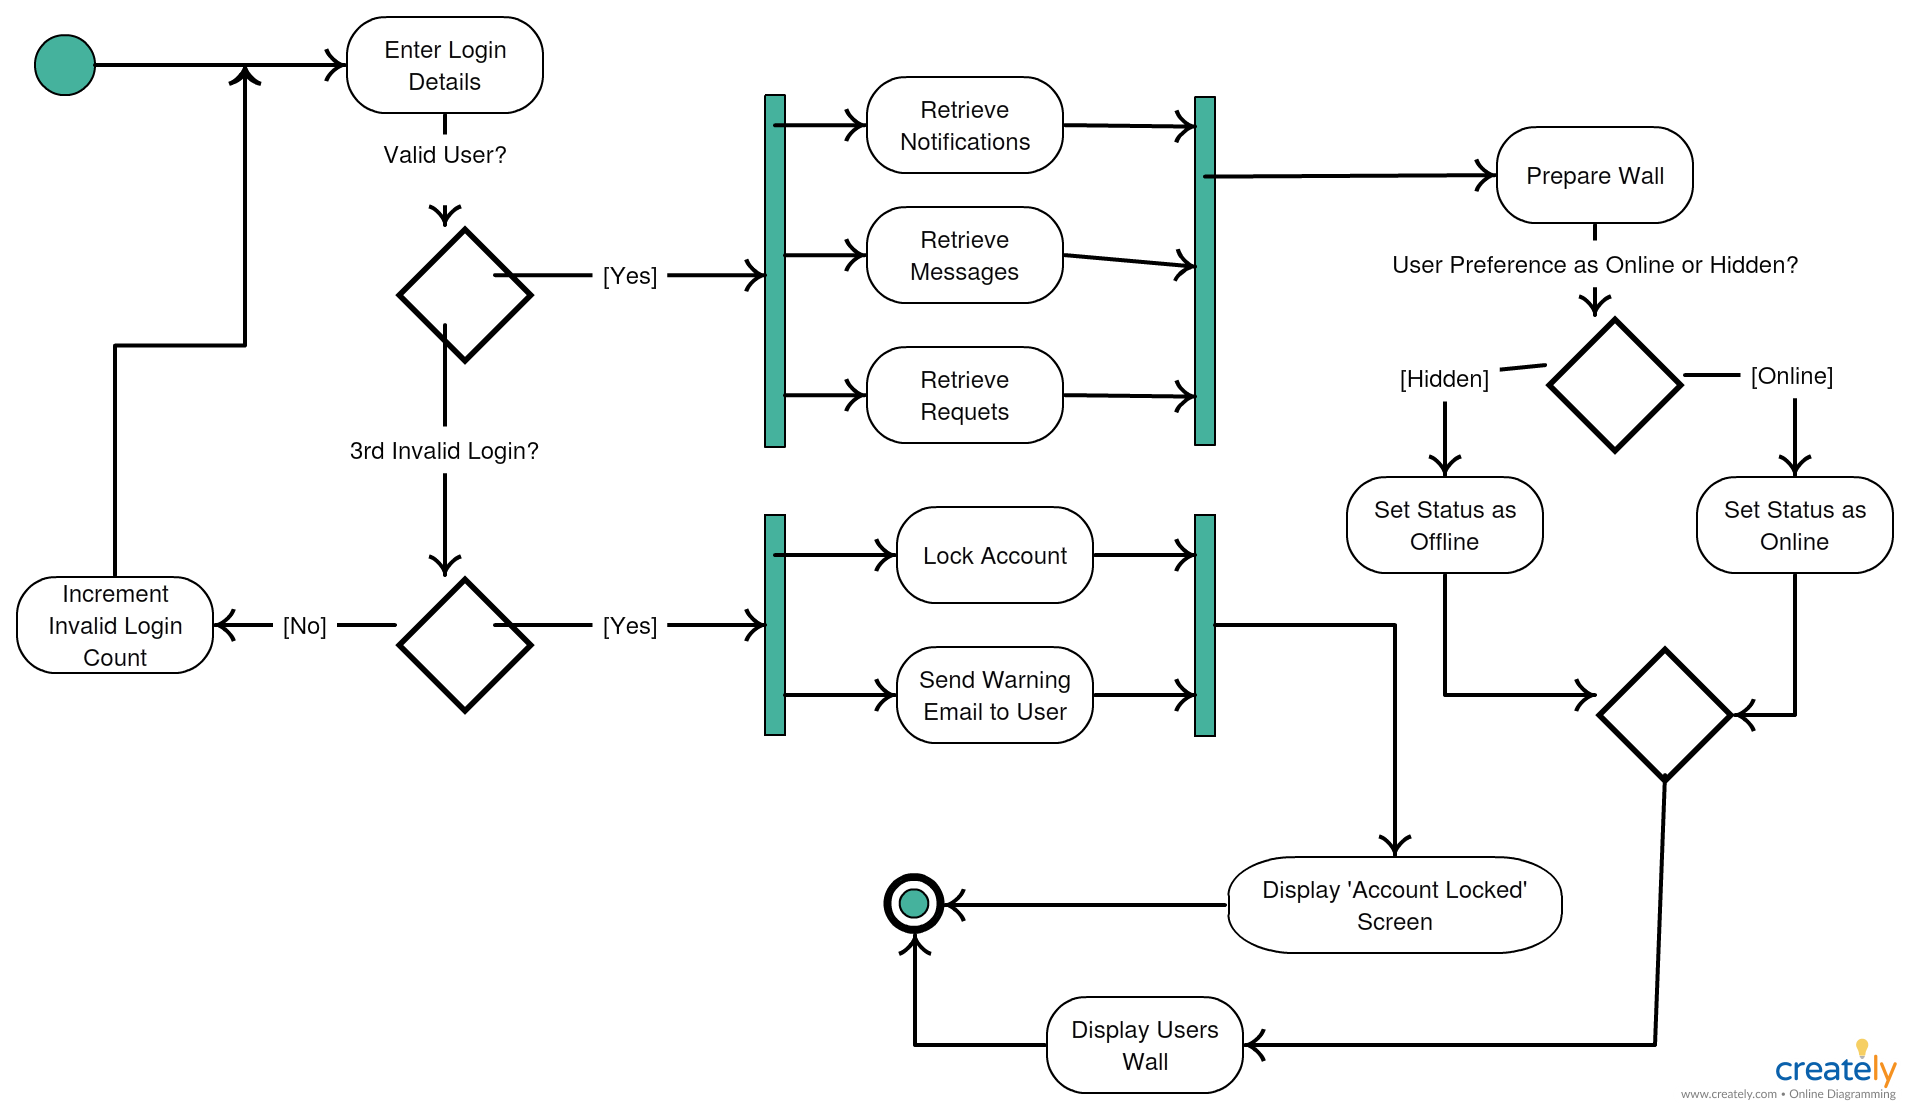 An Activity Diagram Visually Presents A Series Of Actions